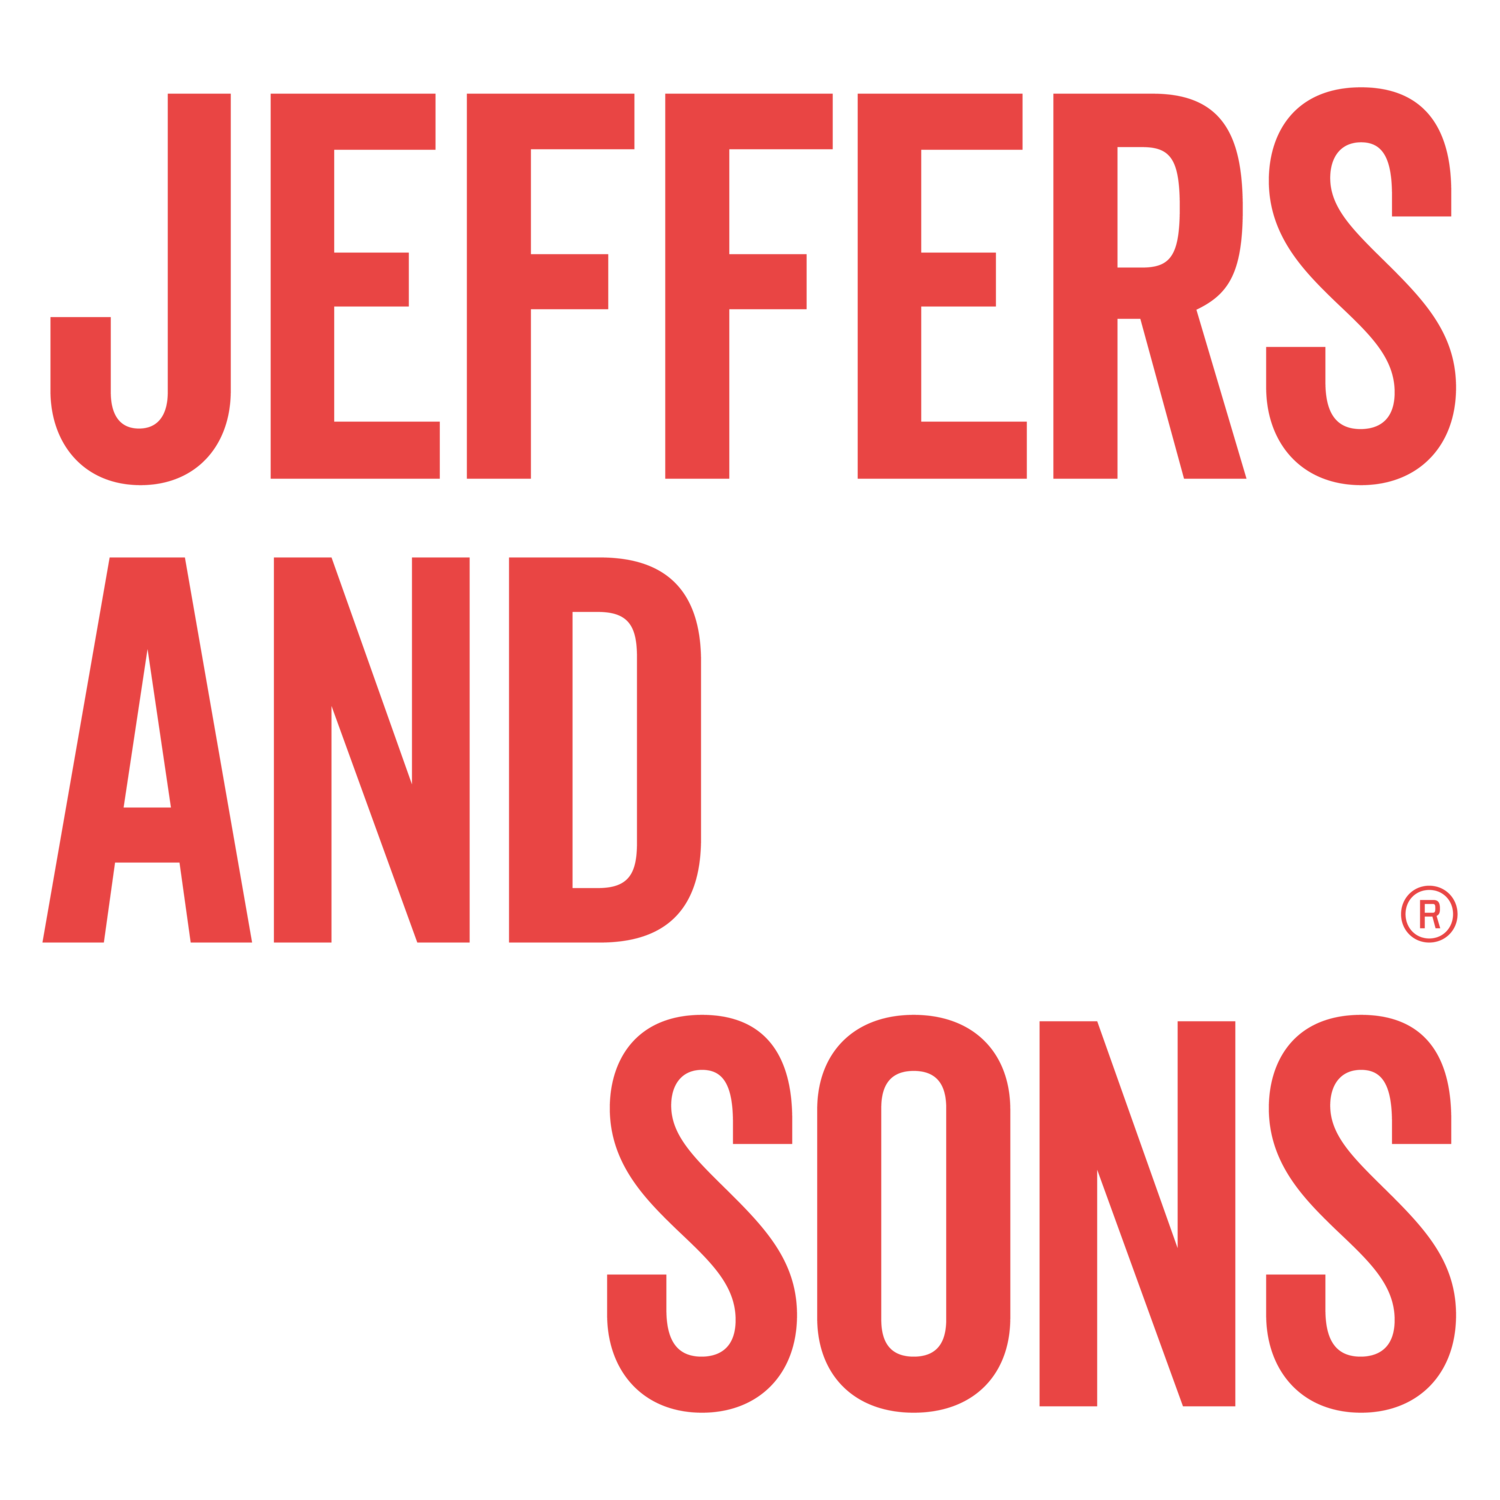 Jeffers & Sons